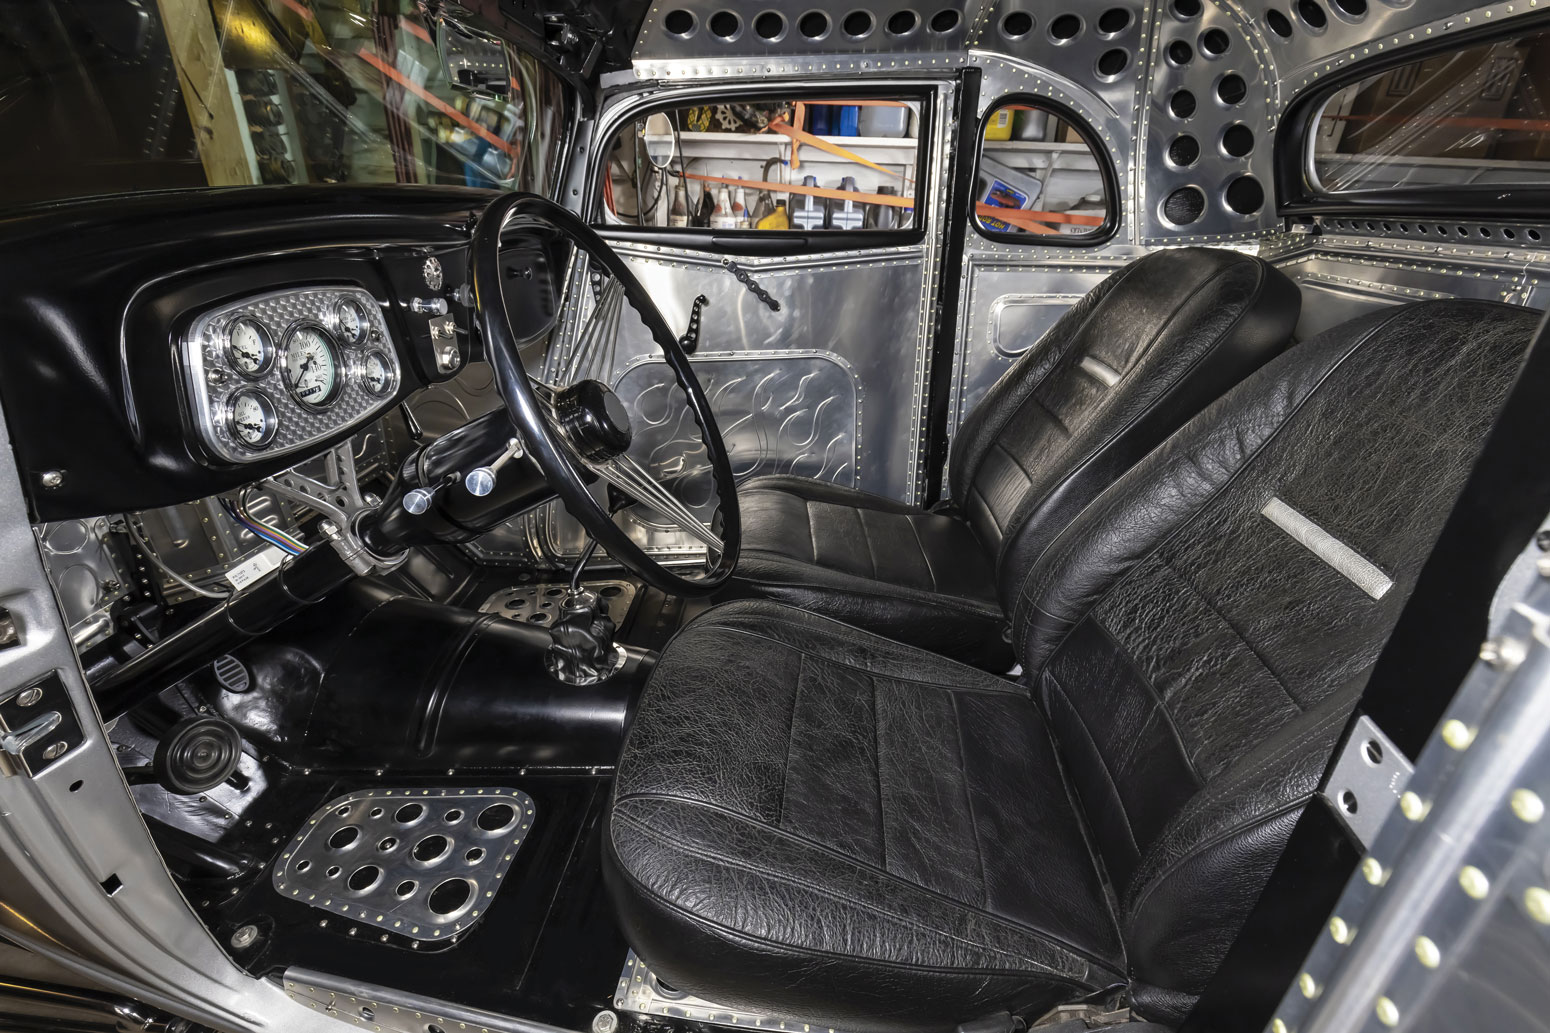 10 1934 Ford Five-Window Coupe Custom Interior, Lokar Shifter with thermal coating